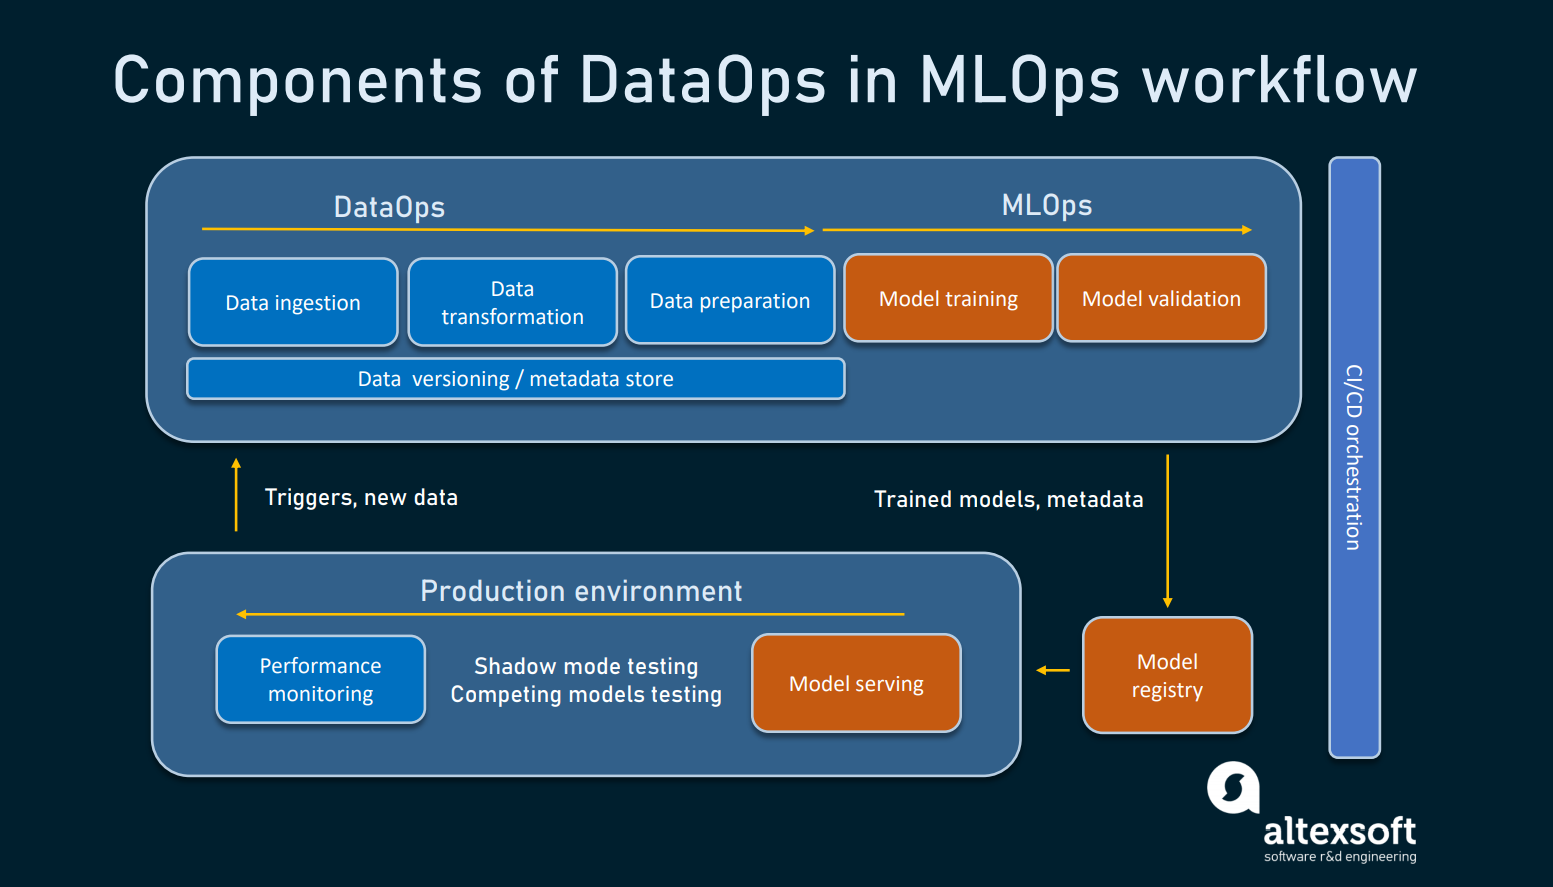 What MLOps has in common with DataOps.